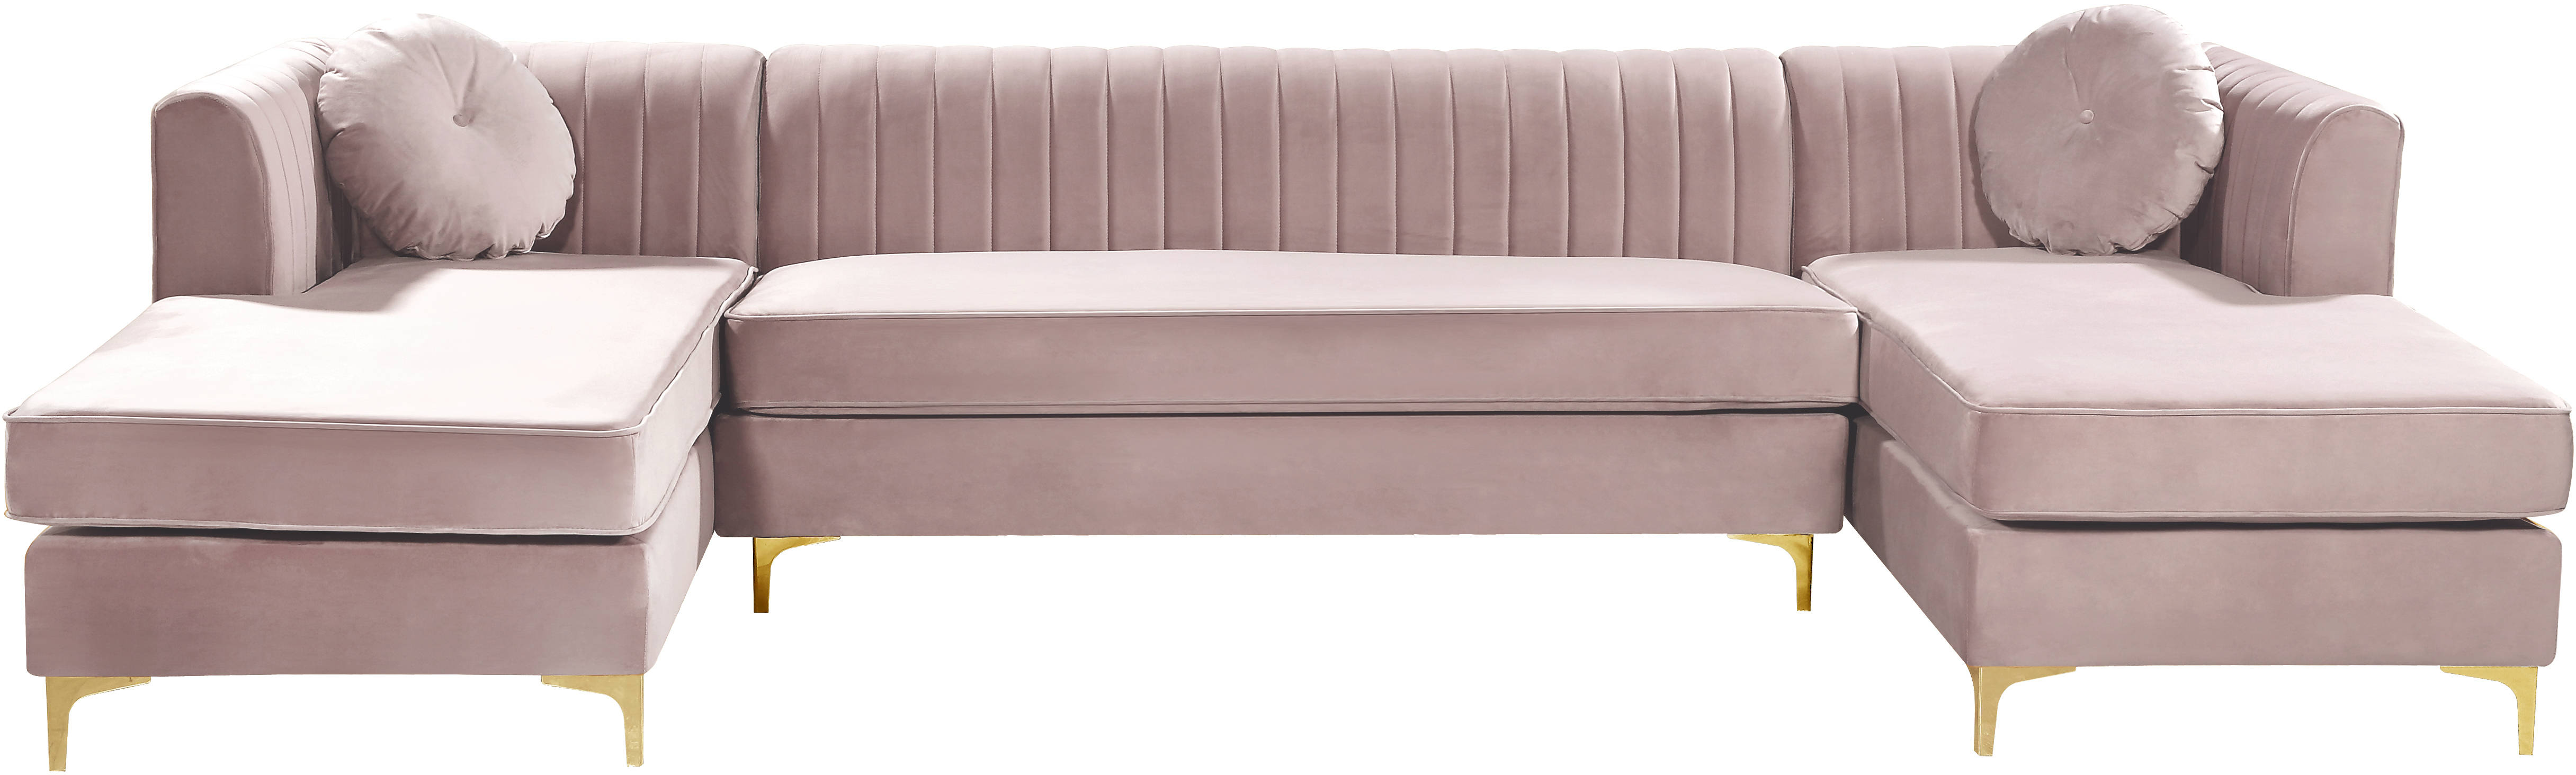 meridian furniture graham pink velvet 3pc sectional the classy home rh theclassyhome com pink sectional sofa covers light pink sectional sofa